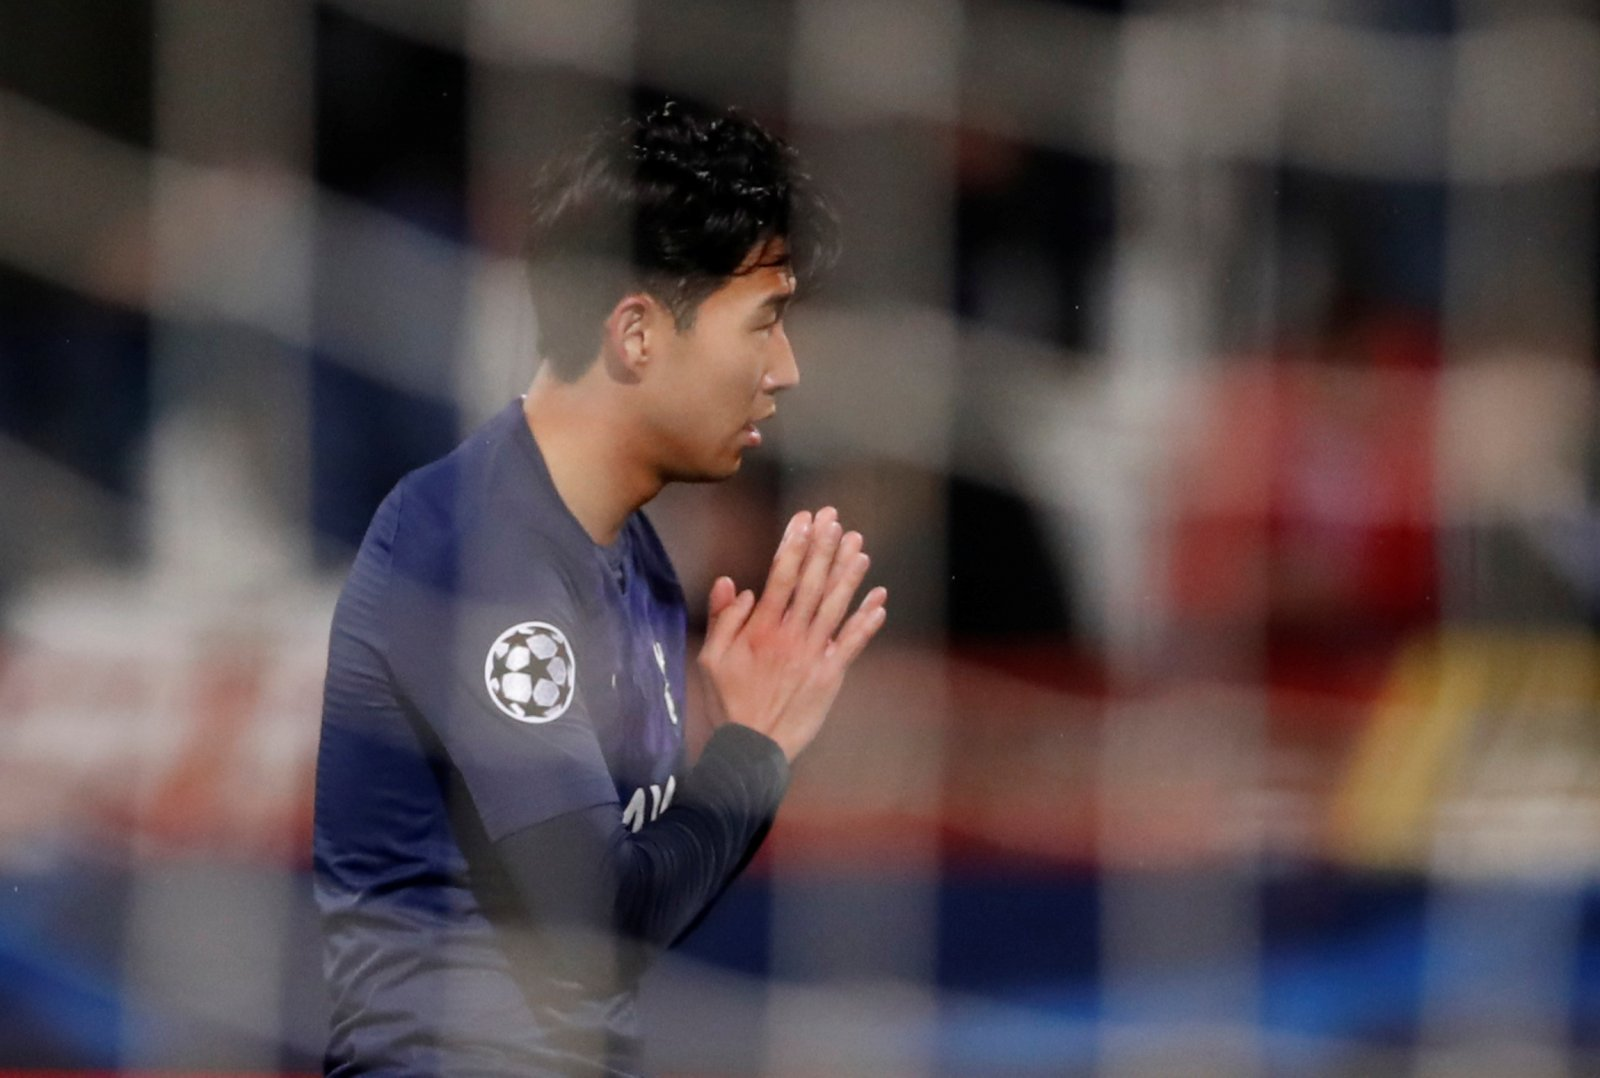 Everton: Fans not impressed with Son Heung-min's apologetic celebration